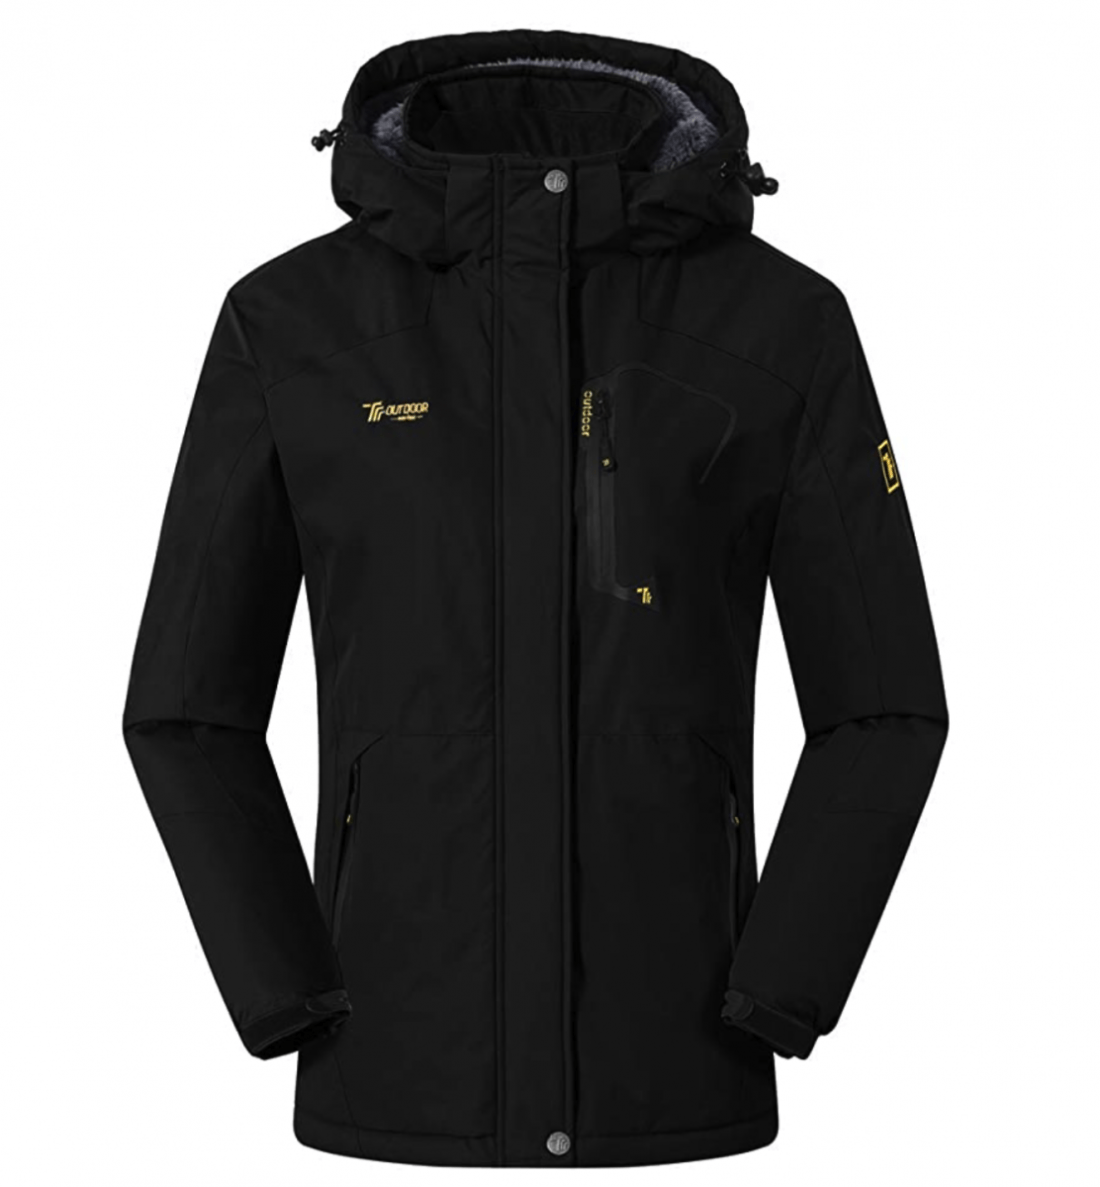 North Face Jacket Dupes